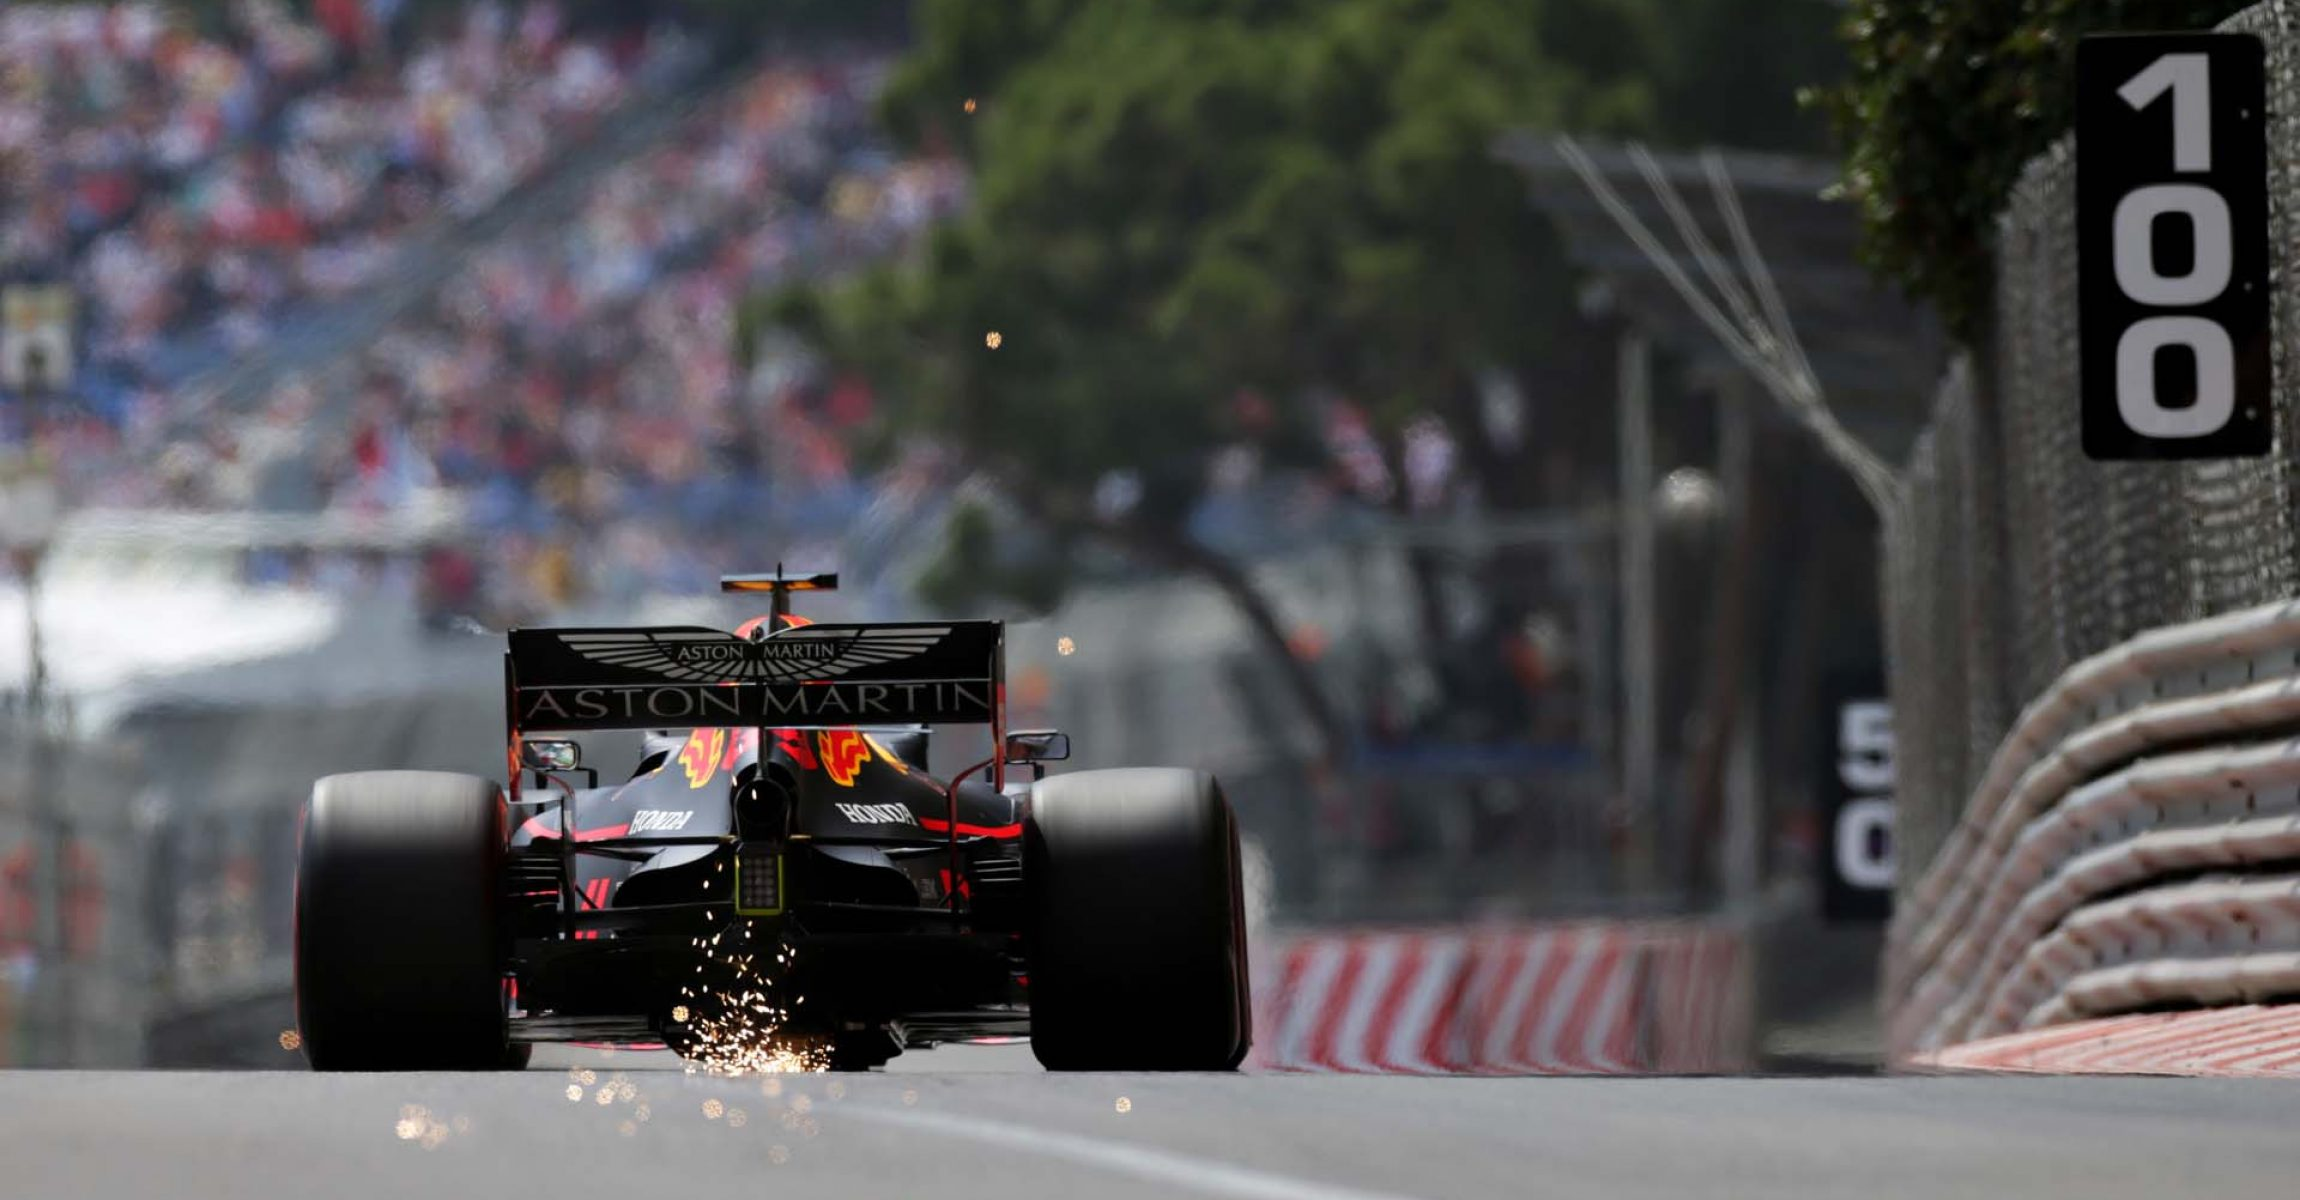 MONTE-CARLO, MONACO - MAY 25: Sparks fly behind Max Verstappen of the Netherlands driving the (33) Aston Martin Red Bull Racing RB15 on track during qualifying for the F1 Grand Prix of Monaco at Circuit de Monaco on May 25, 2019 in Monte-Carlo, Monaco. (Photo by Peter Fox/Getty Images) // Getty Images / Red Bull Content Pool  // AP-1ZEPAGB5H1W11 // Usage for editorial use only // Please go to www.redbullcontentpool.com for further information. //